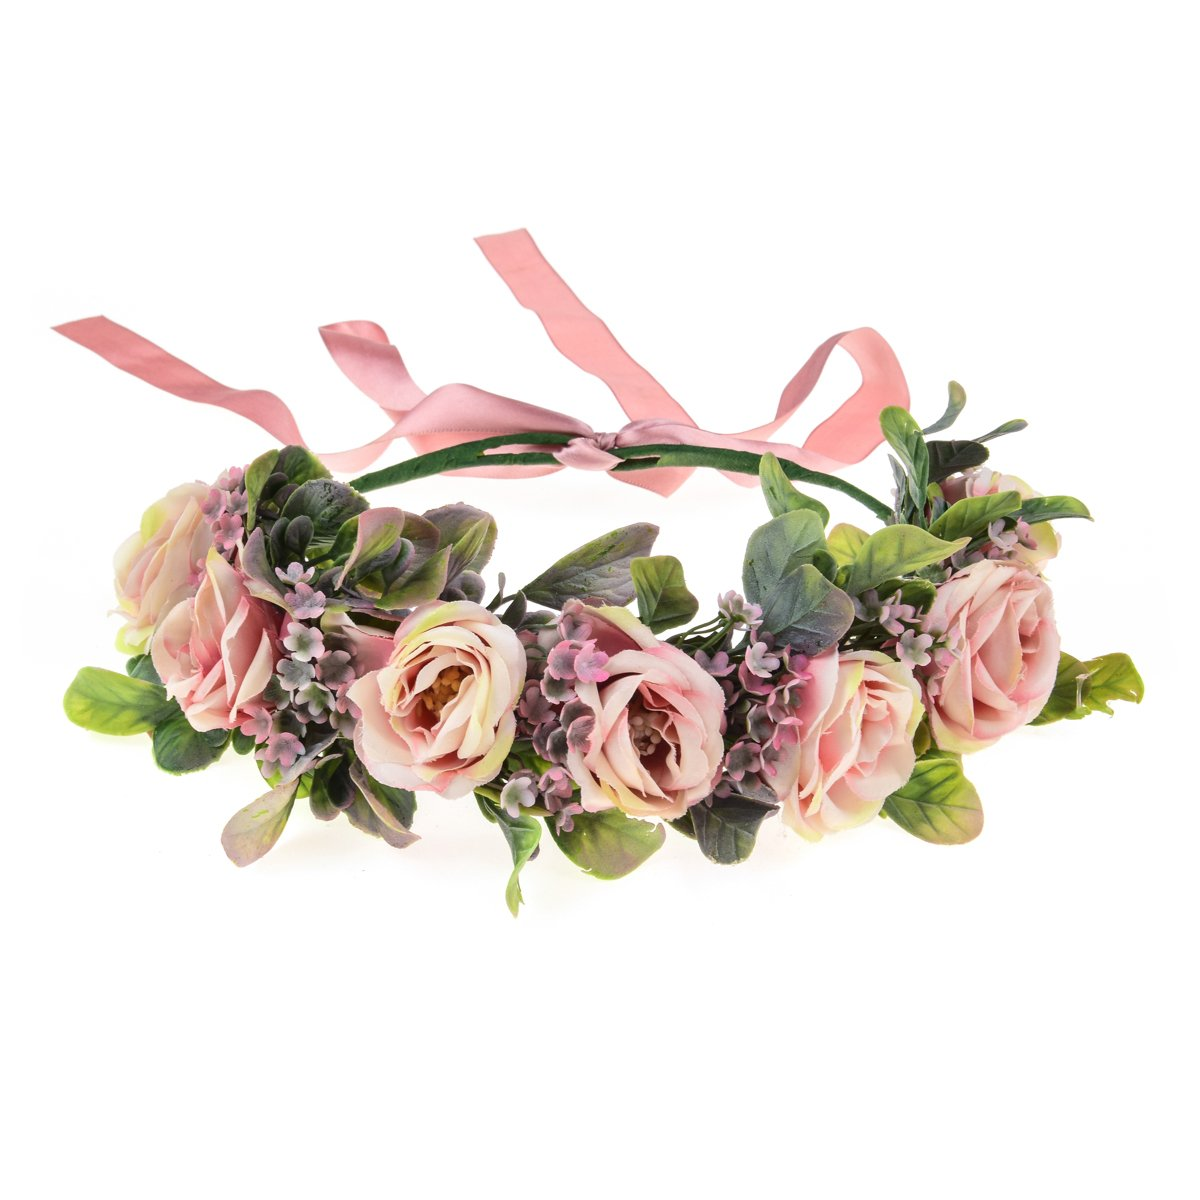 Love Sweety Succulents Flower Crown Greenery Rose Floral Headpiece Grass Bridal Boho Headband (Pink)